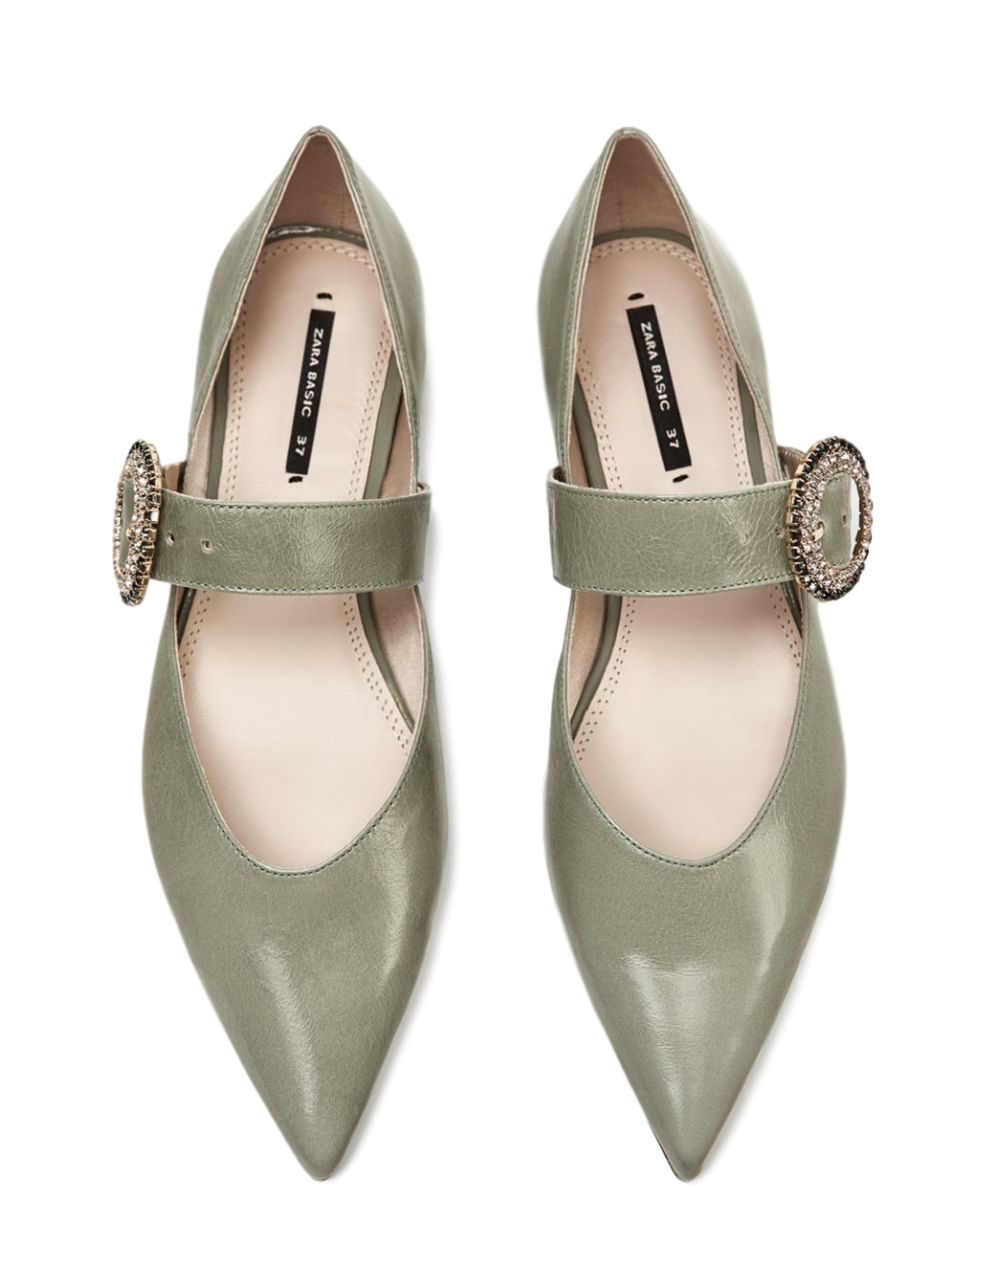 https-__www.zara.com_us_en_woman_shoes_flat-shoes_bejewelled-leather-ballerinas-c269196p4831014.html_clipped_rev_1.png